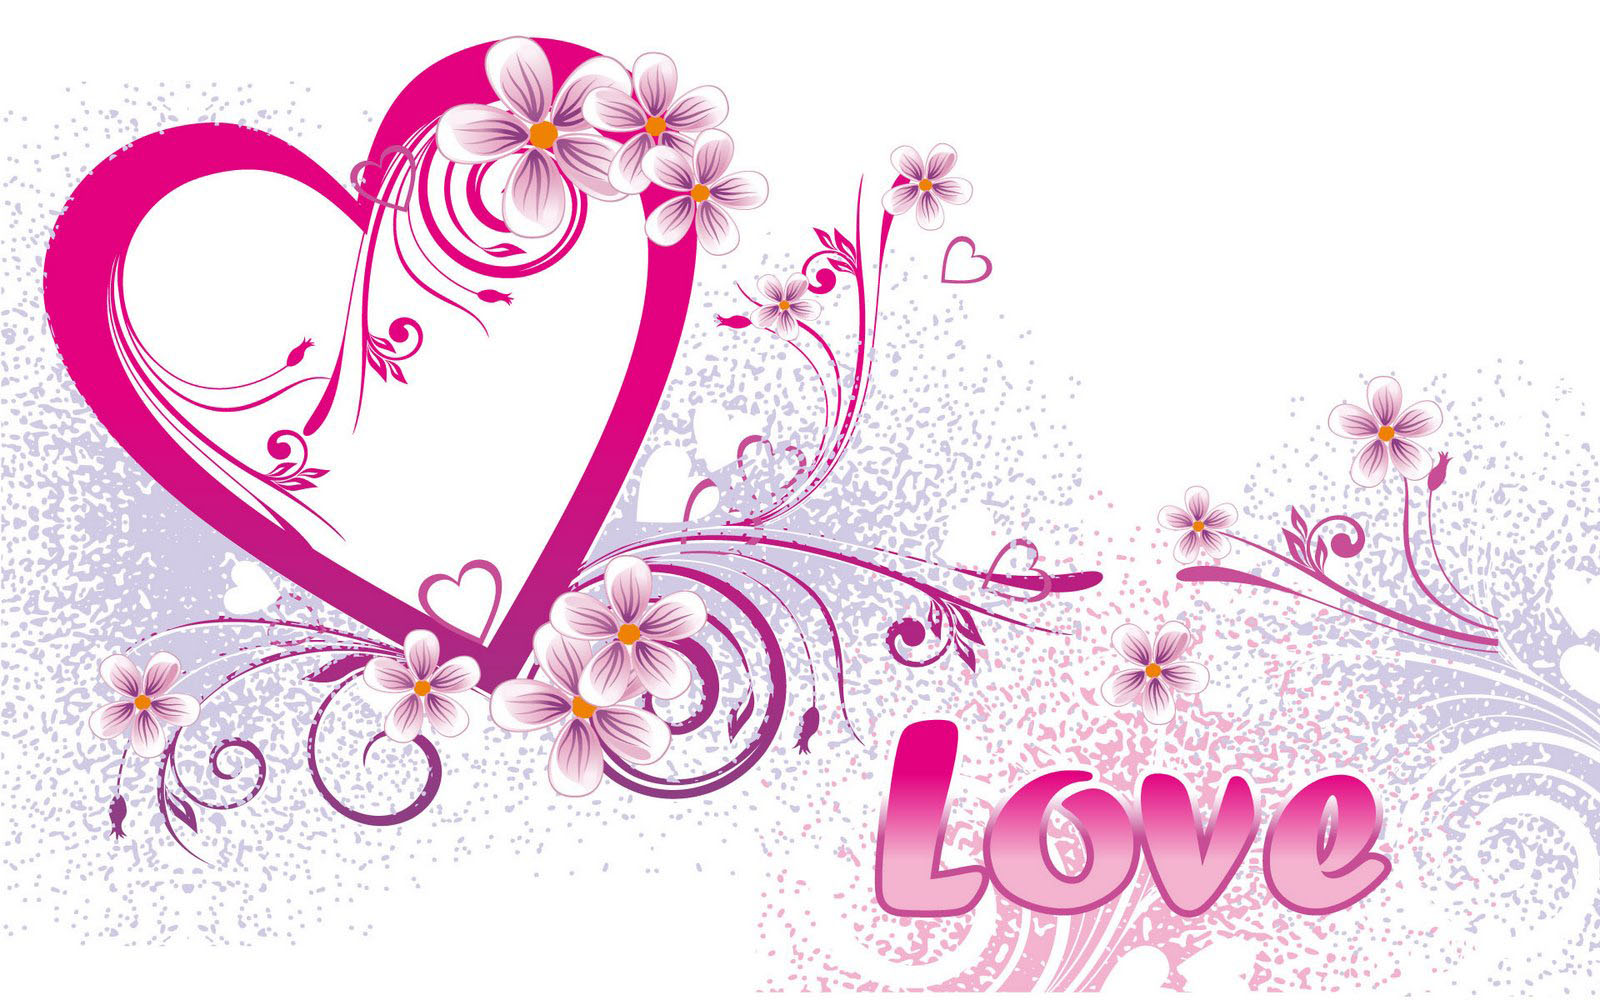 Love Wallpaper All New : wallpapers: New Love Wallpapers